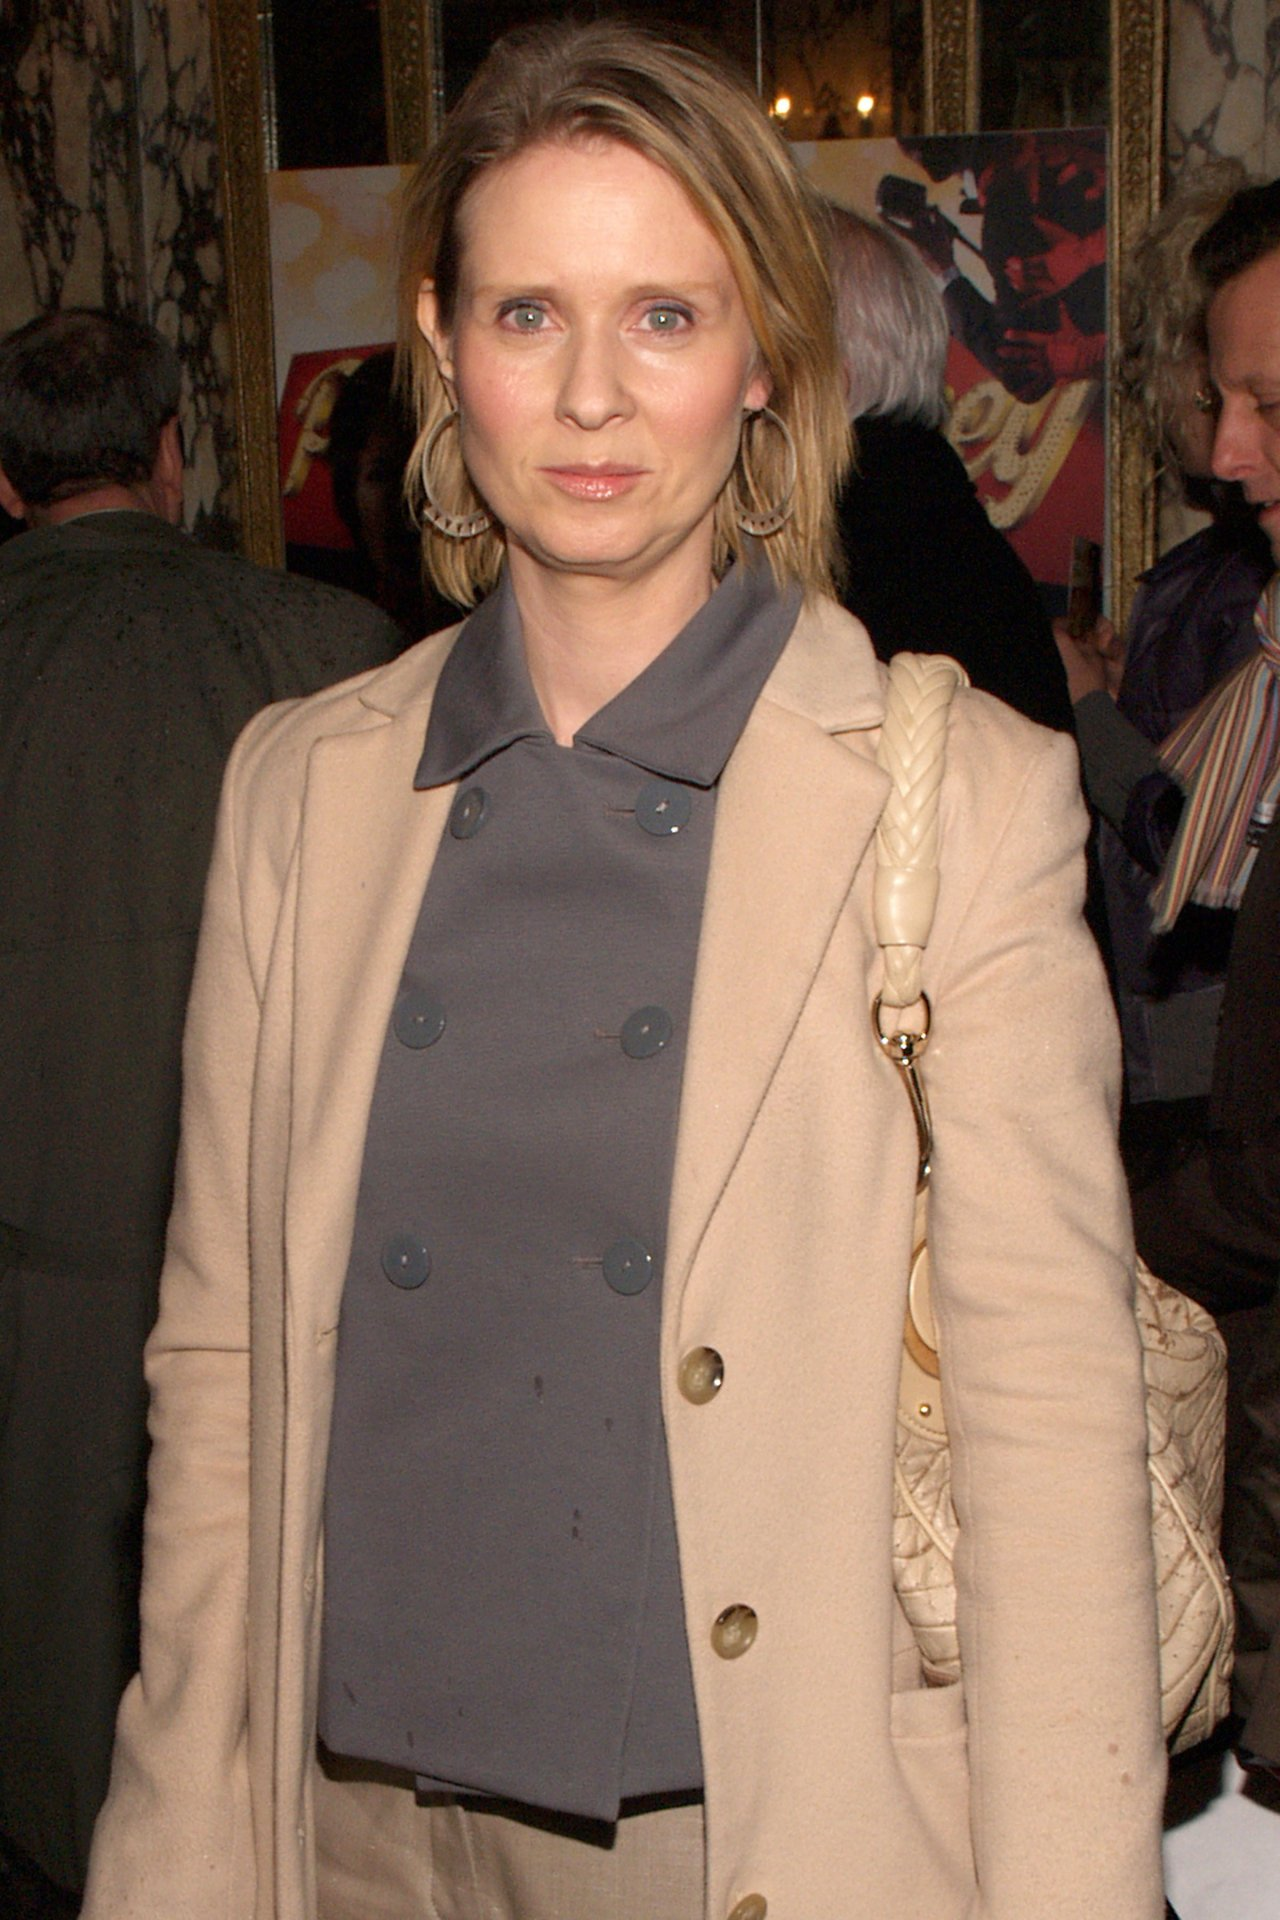 cynthia nixon wallpaper - photo #23